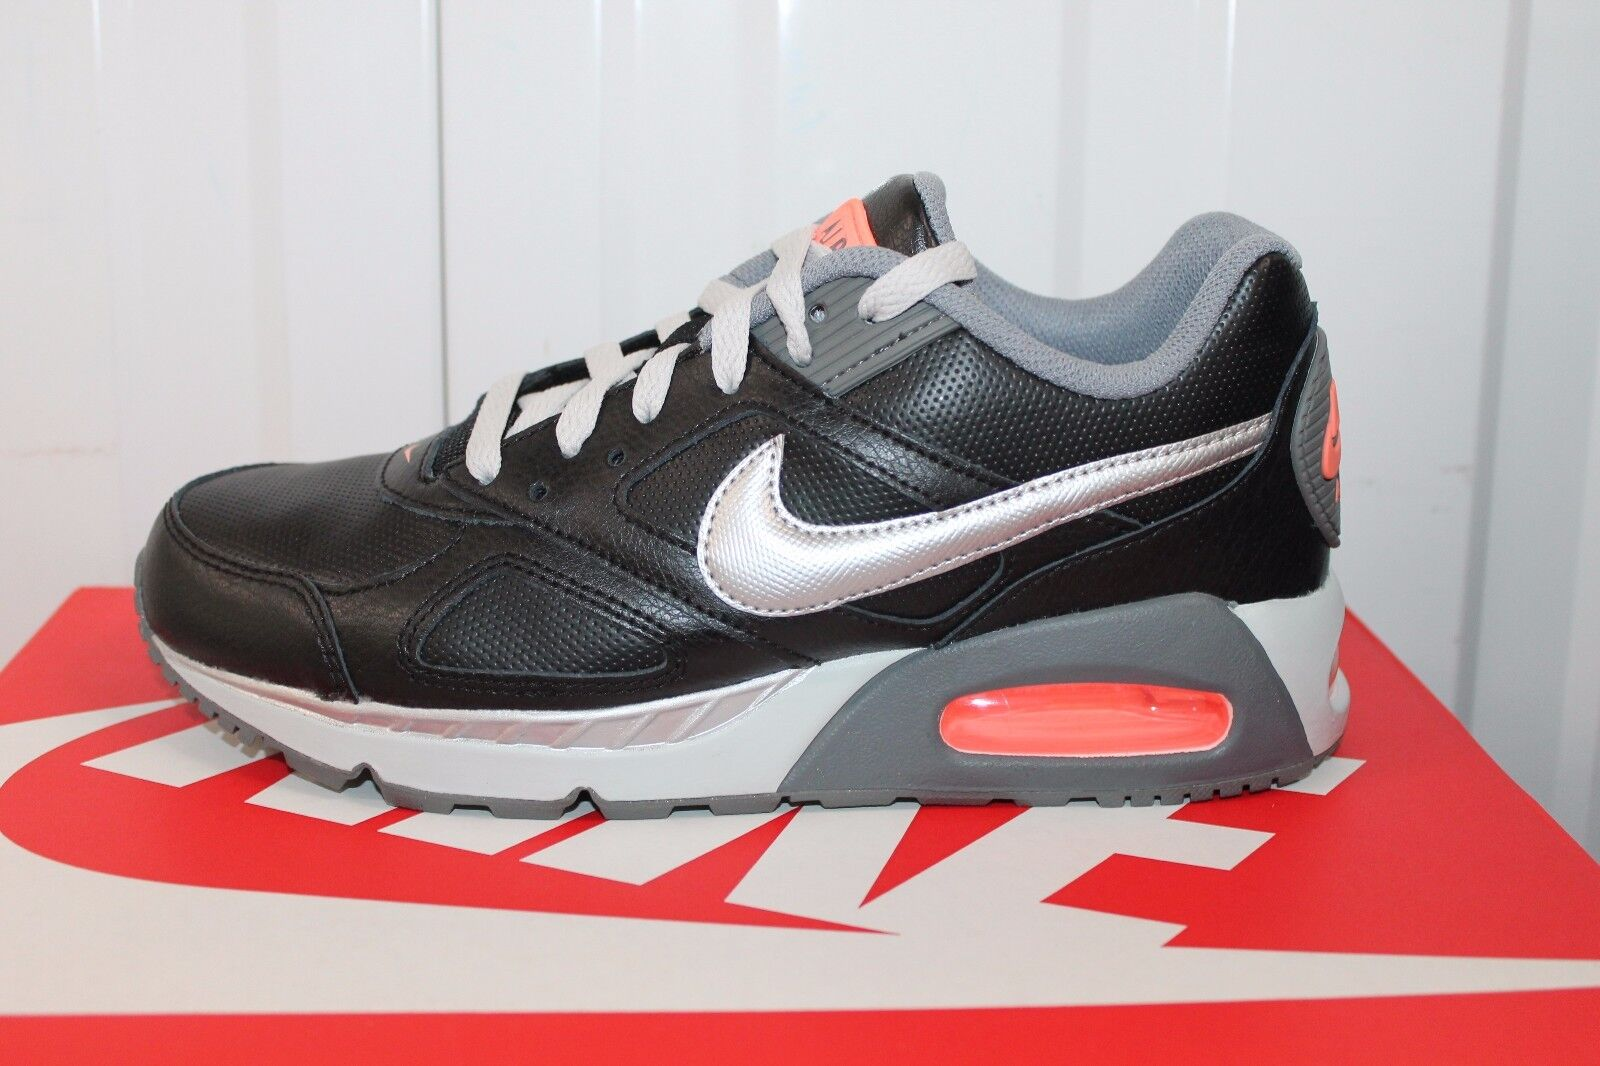 NIKE AIRMAX IVO LTR 579770-002 Price reduction Brand discount